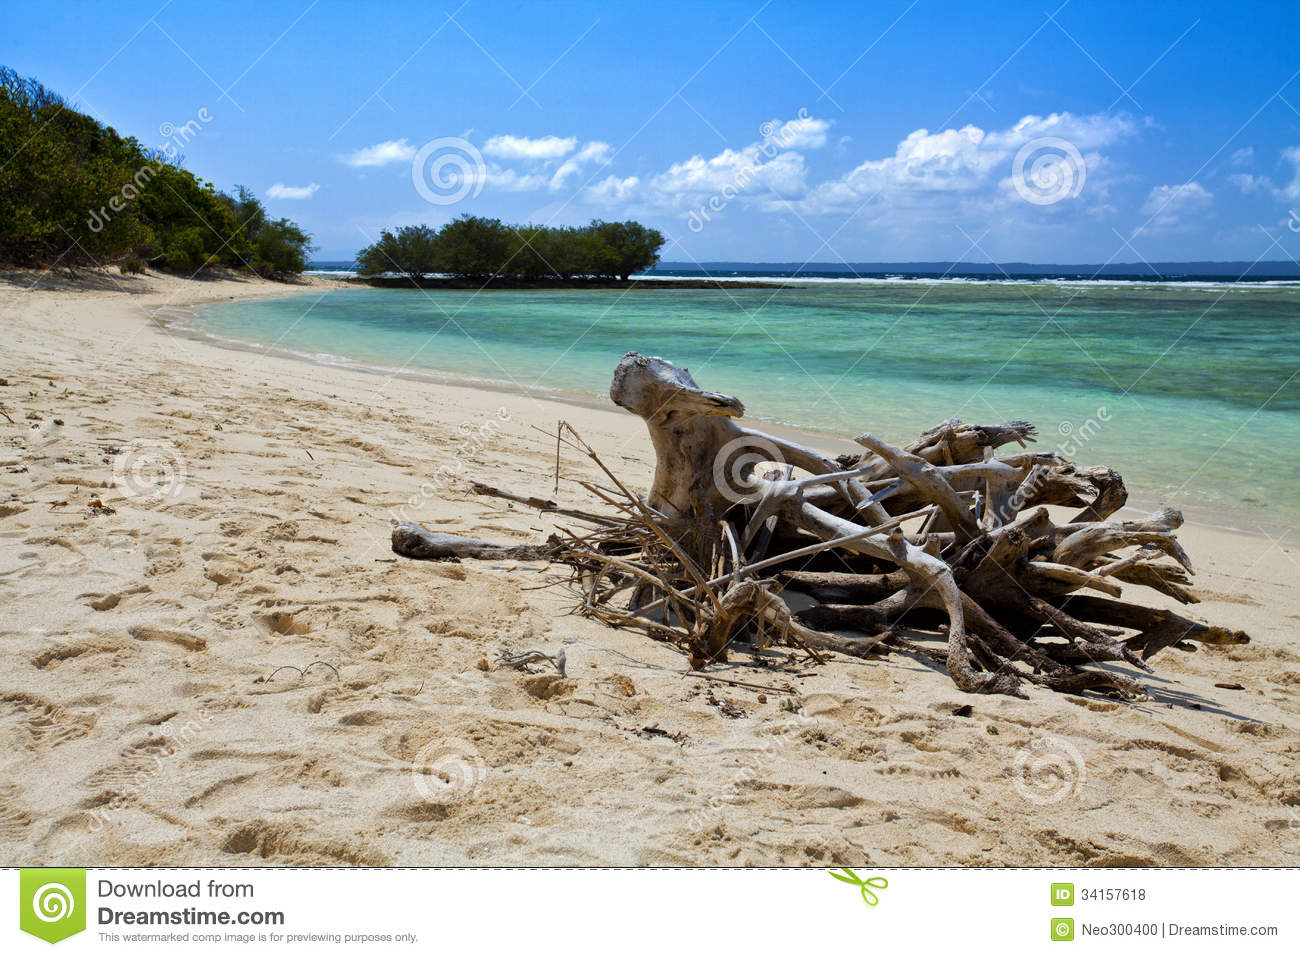 Download this Panaitan Island Beach... picture